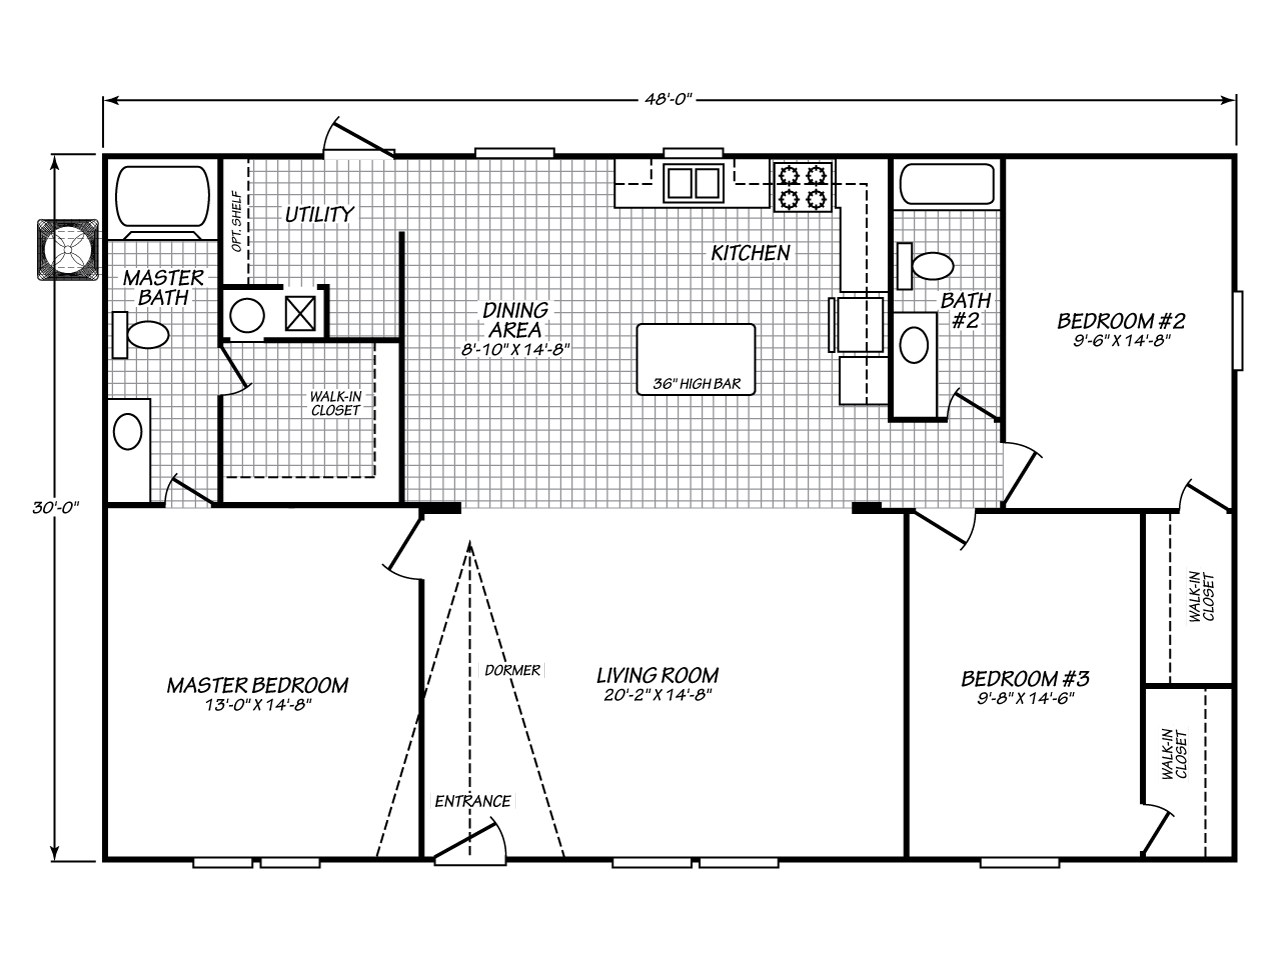 View velocity model ve32483v floor plan for a 1440 sq ft for Floor layout planner